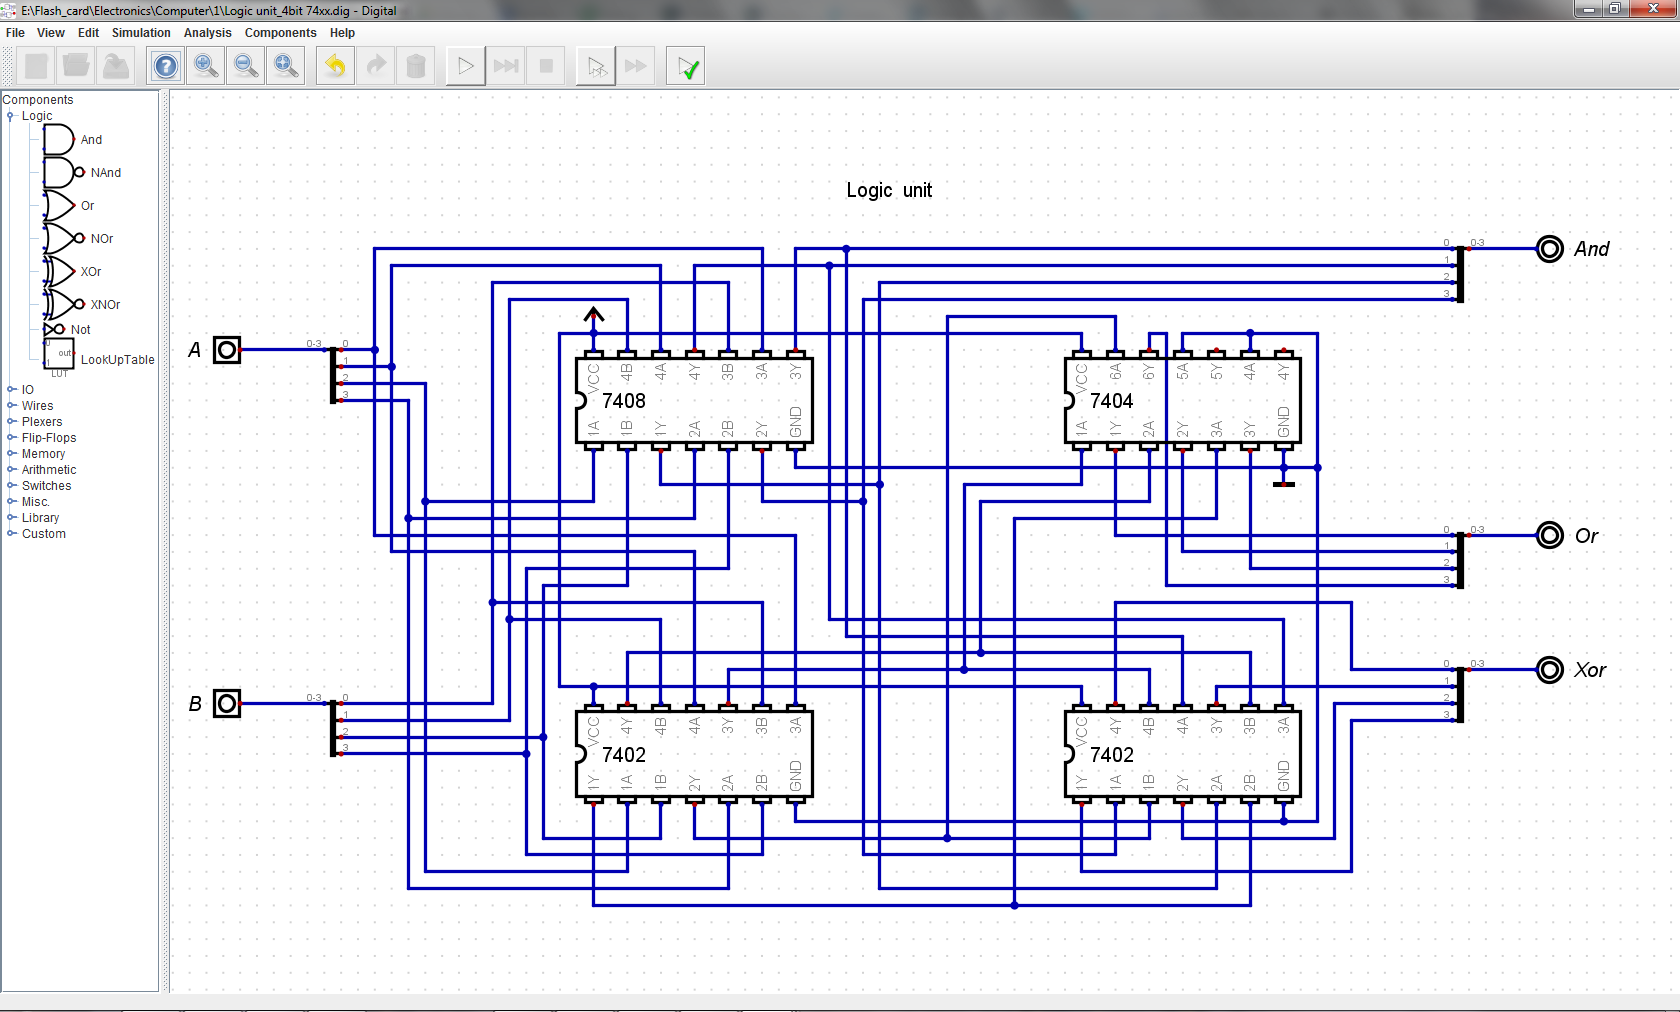 16 Bit Ttl Computer Gate Circuit Diagram Further Xor Schematic On With Essentially It Is Compount Made From Ands And Nors Inverters So Or Are Achieved In The Same